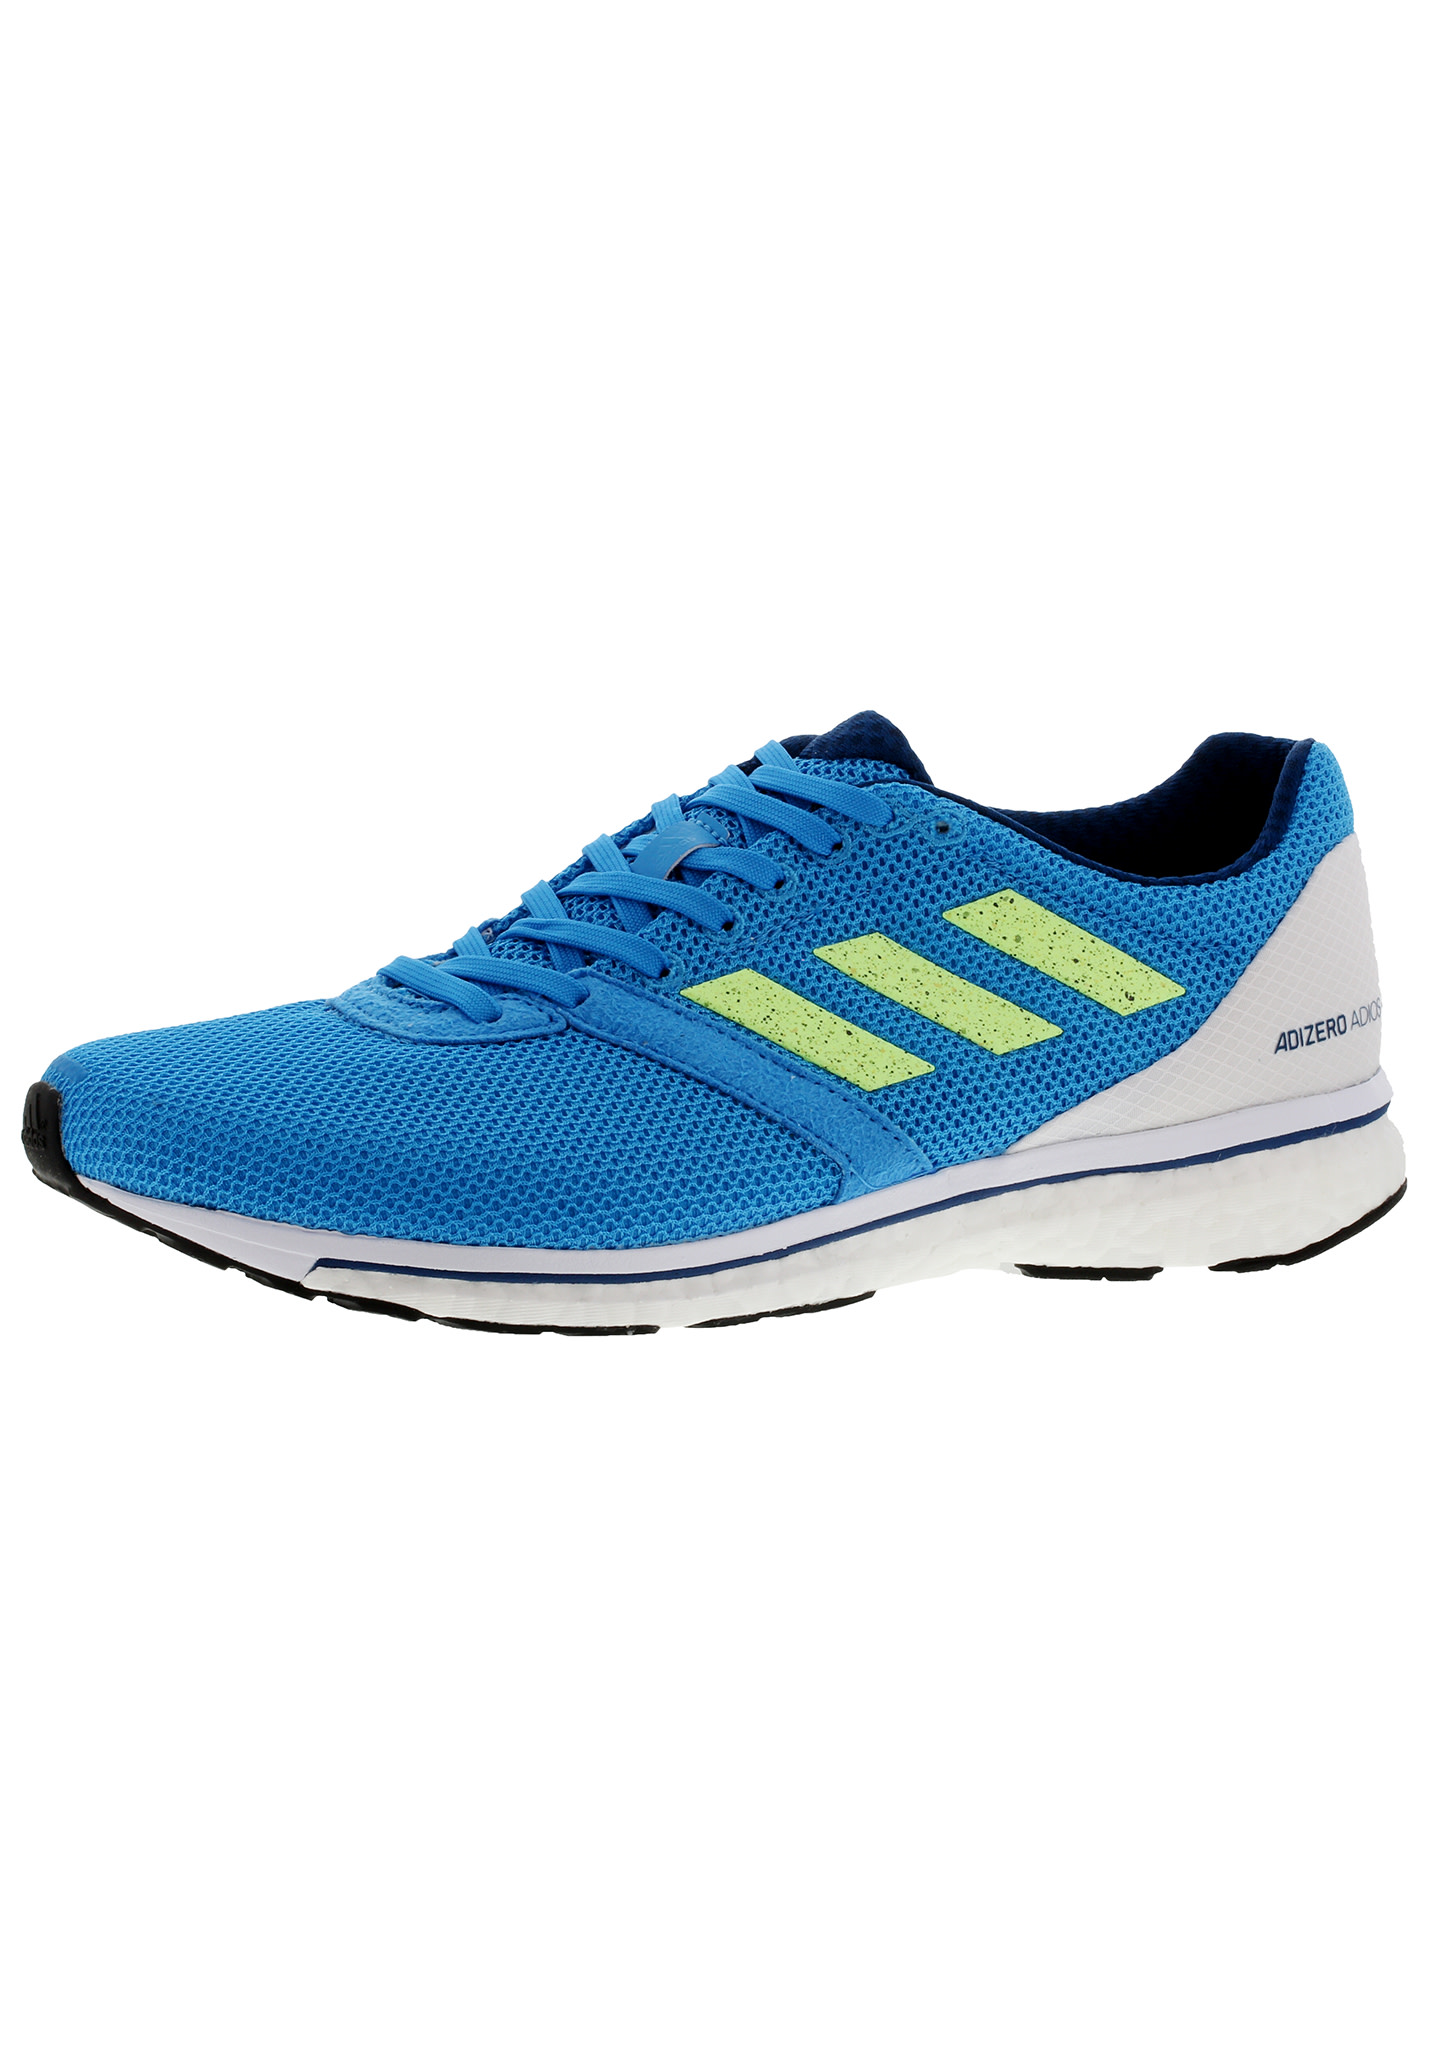 4 Chaussures Adios Homme Running Adidas Bleu Adizero Pour b7m6yvYfIg